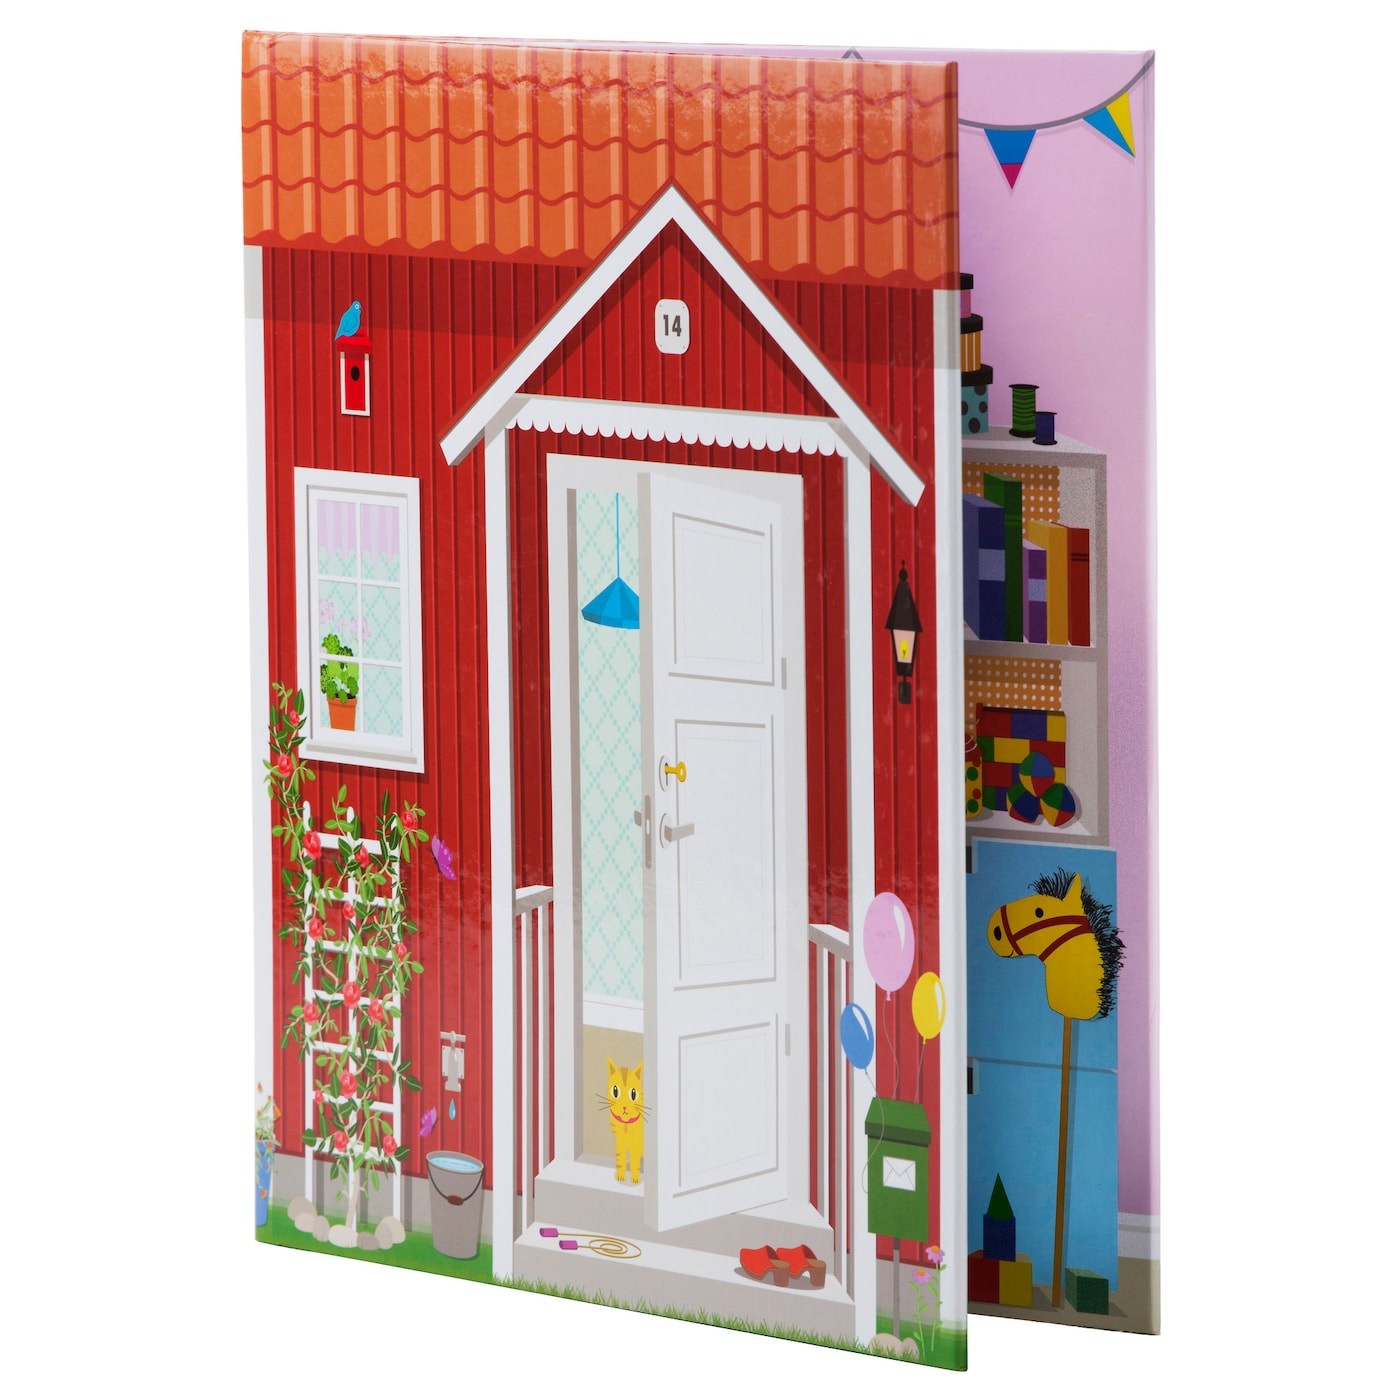 IKEA SPEXA doll's house Dollhouse in the form of a book, with 4 different room settings.